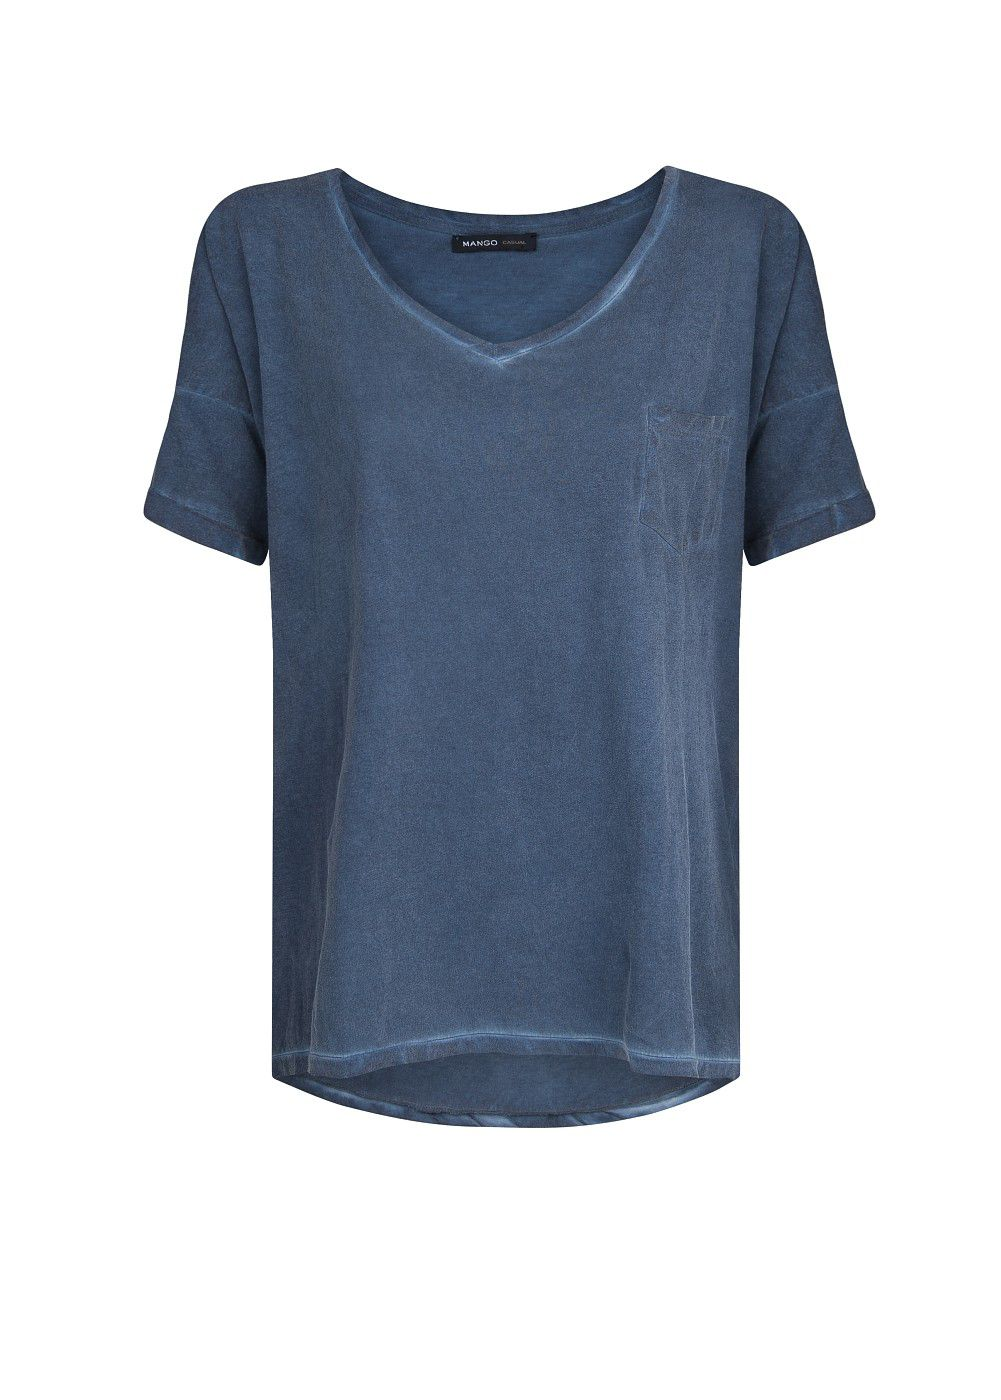 Distressed t-shirt